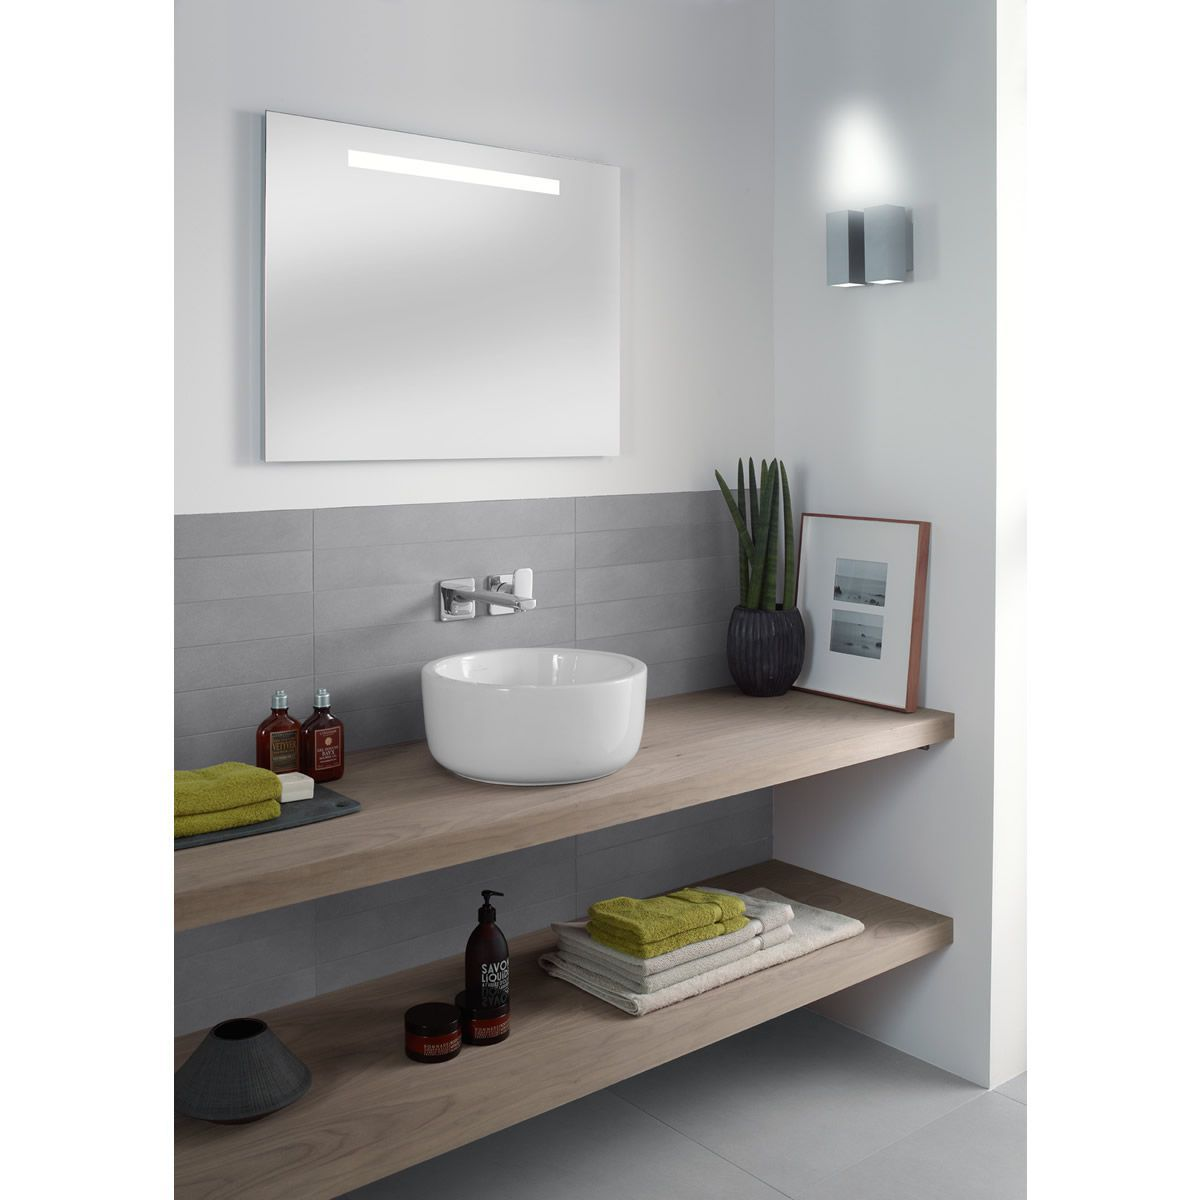 villeroy boch soho subway led illuminated mirror uk. Black Bedroom Furniture Sets. Home Design Ideas